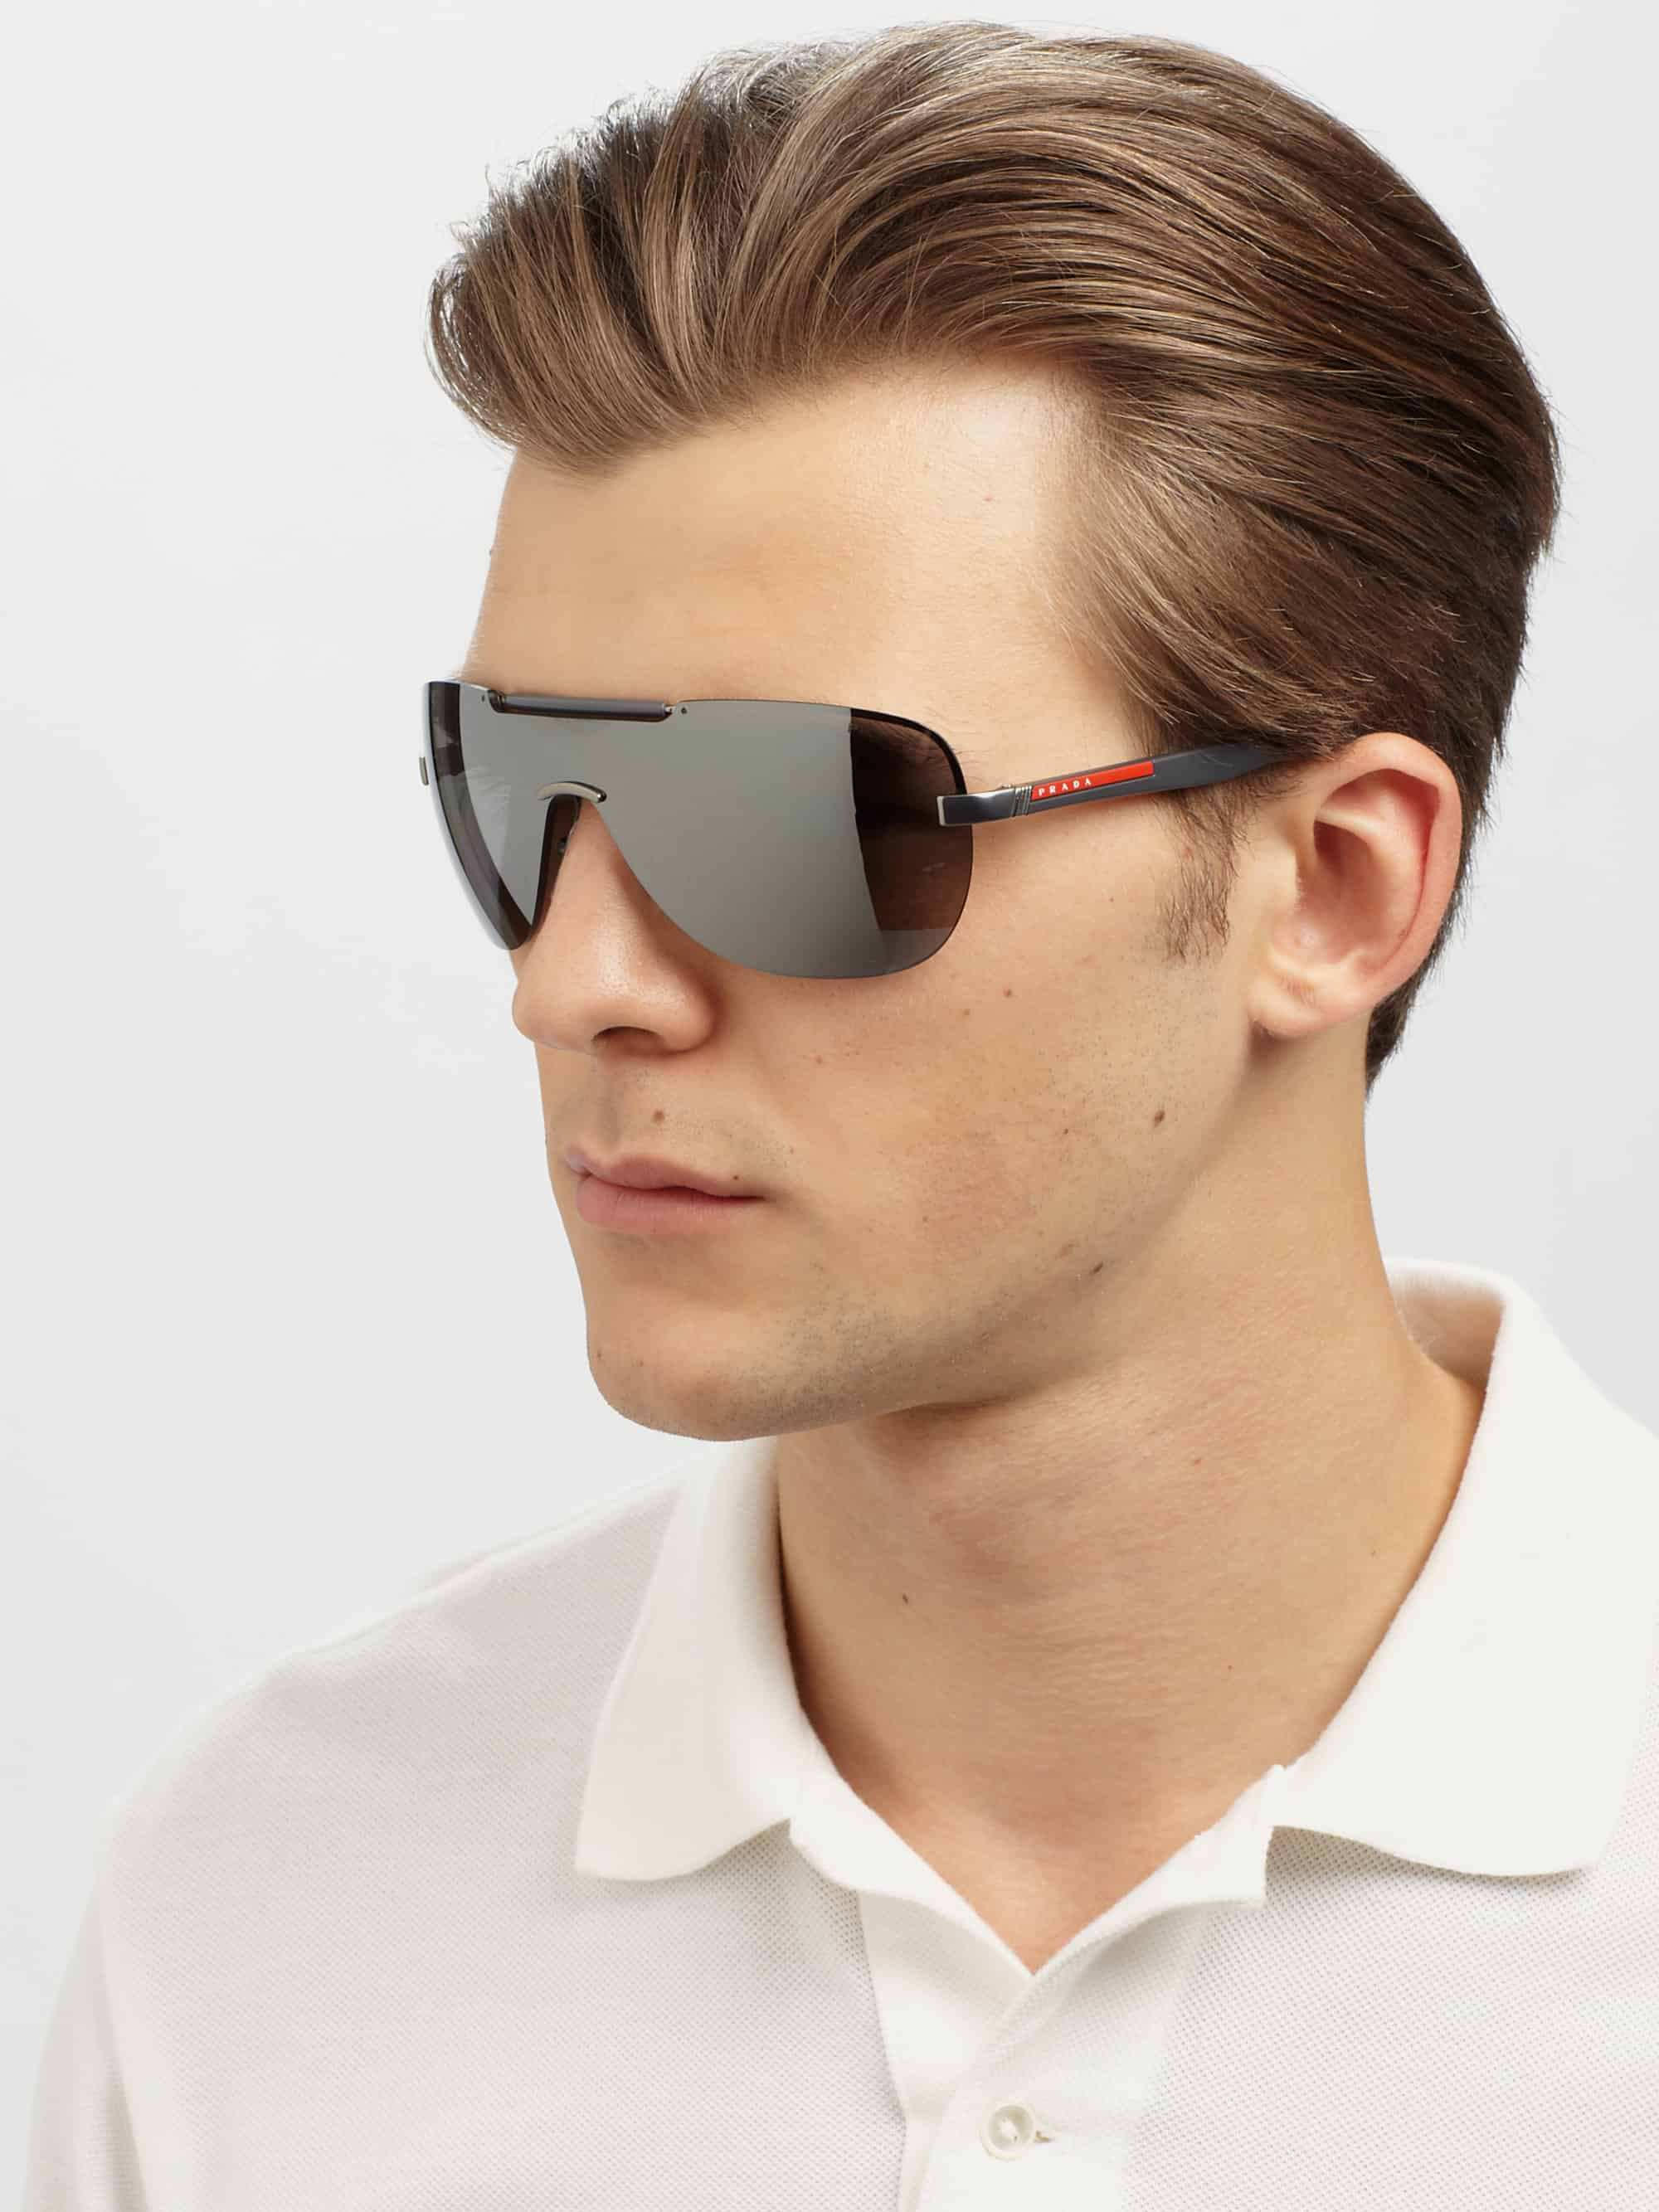 Mens Sunglass  how to select men sunglasses to look like a rock star